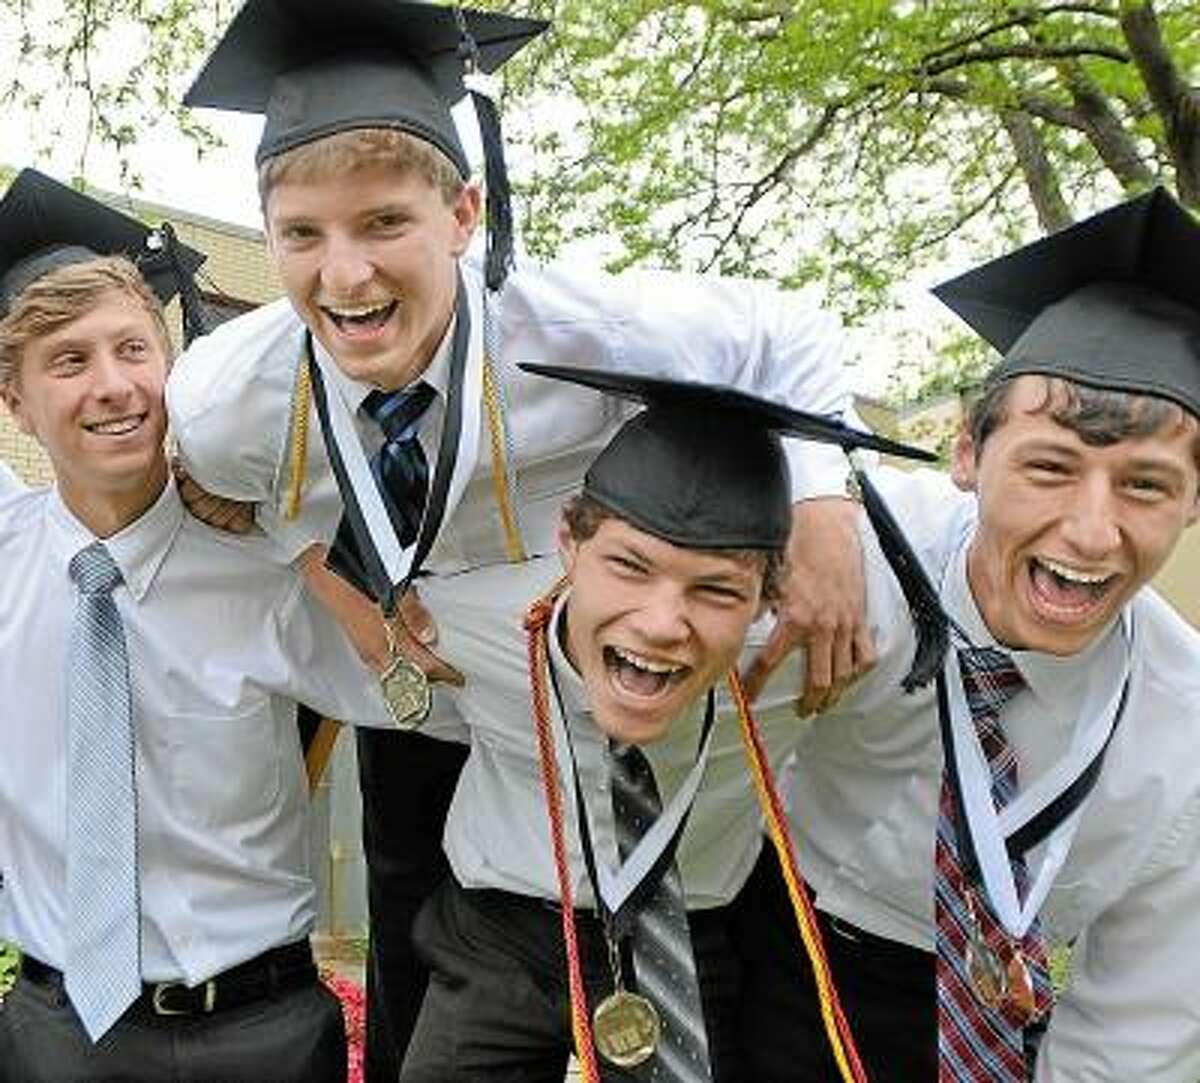 Members of Xavier's class of 2013, Adam Boyington, of Haddam, Middletown residents Corey Danko, Gavin Clemmey, school president, and Hamden resident Zac Camner celebrate after receiving their diplomas at the Forty-seventh Commencement Sunday morning. All are members of Xavier's Ultimate Frisbee team. Catherine Avalone/The Middletown Press